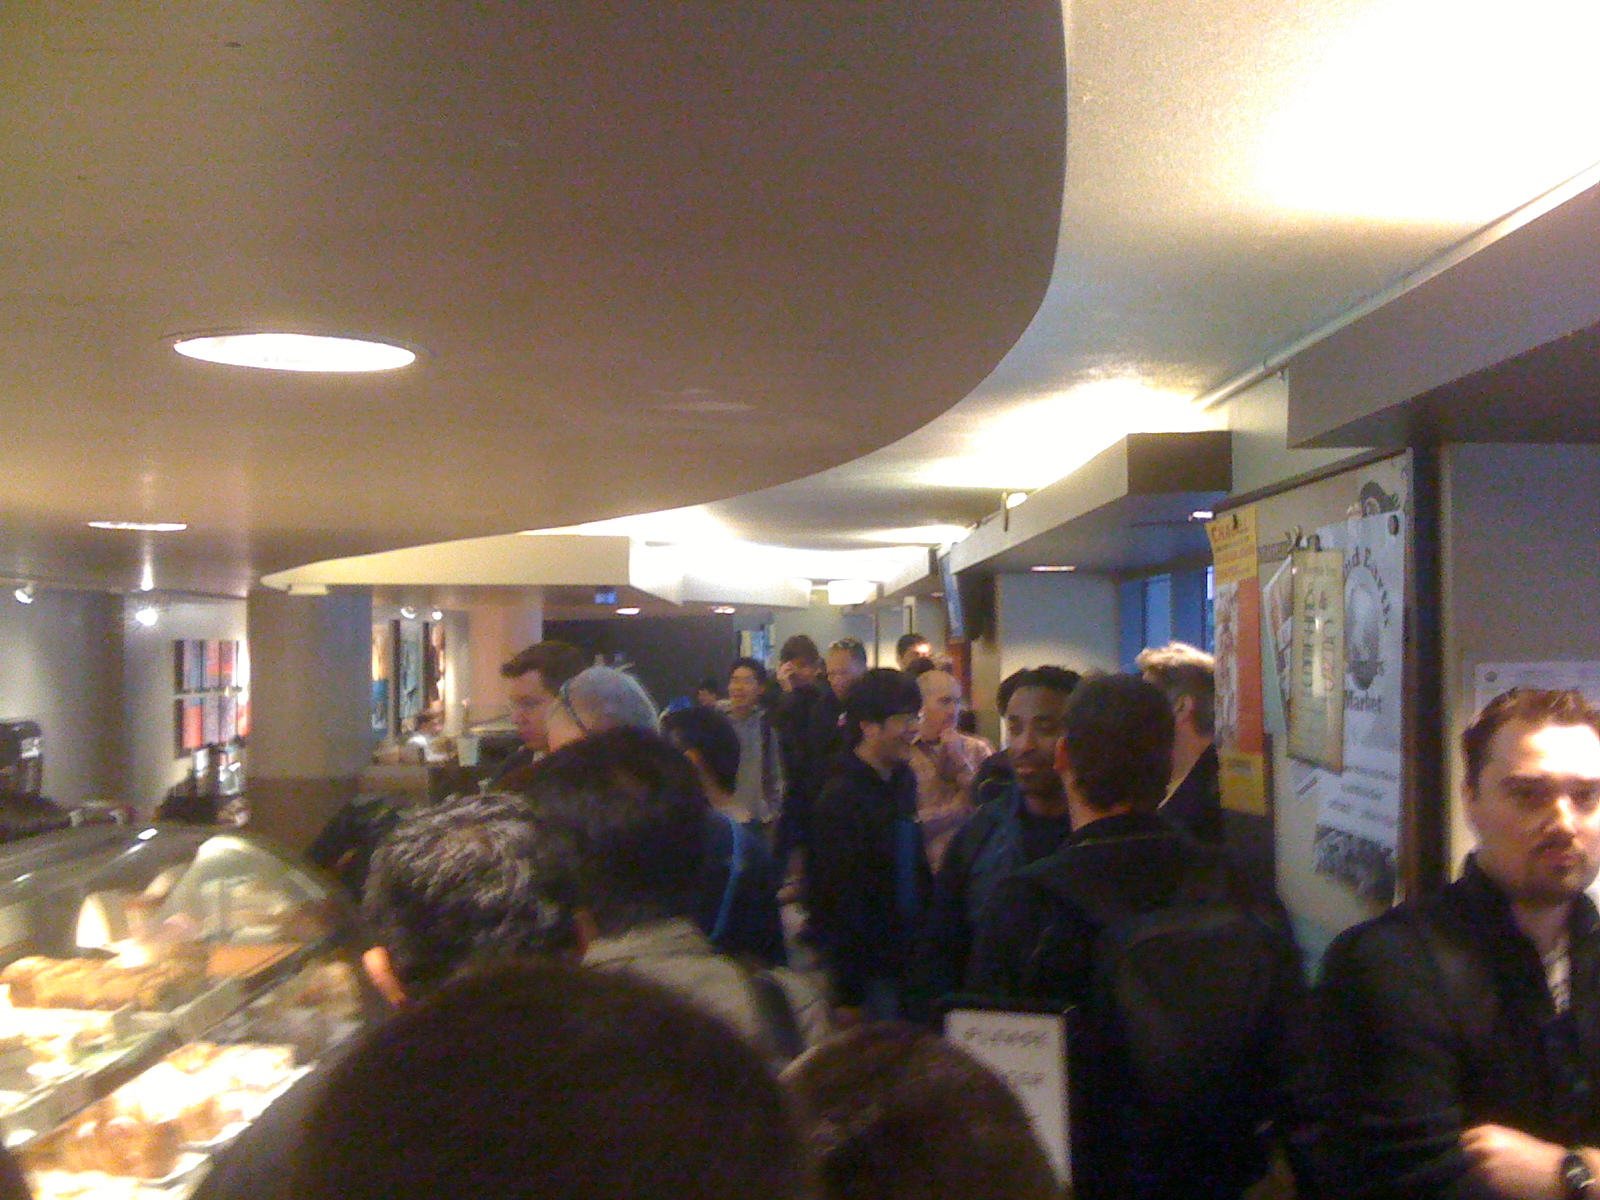 Starbucks queue